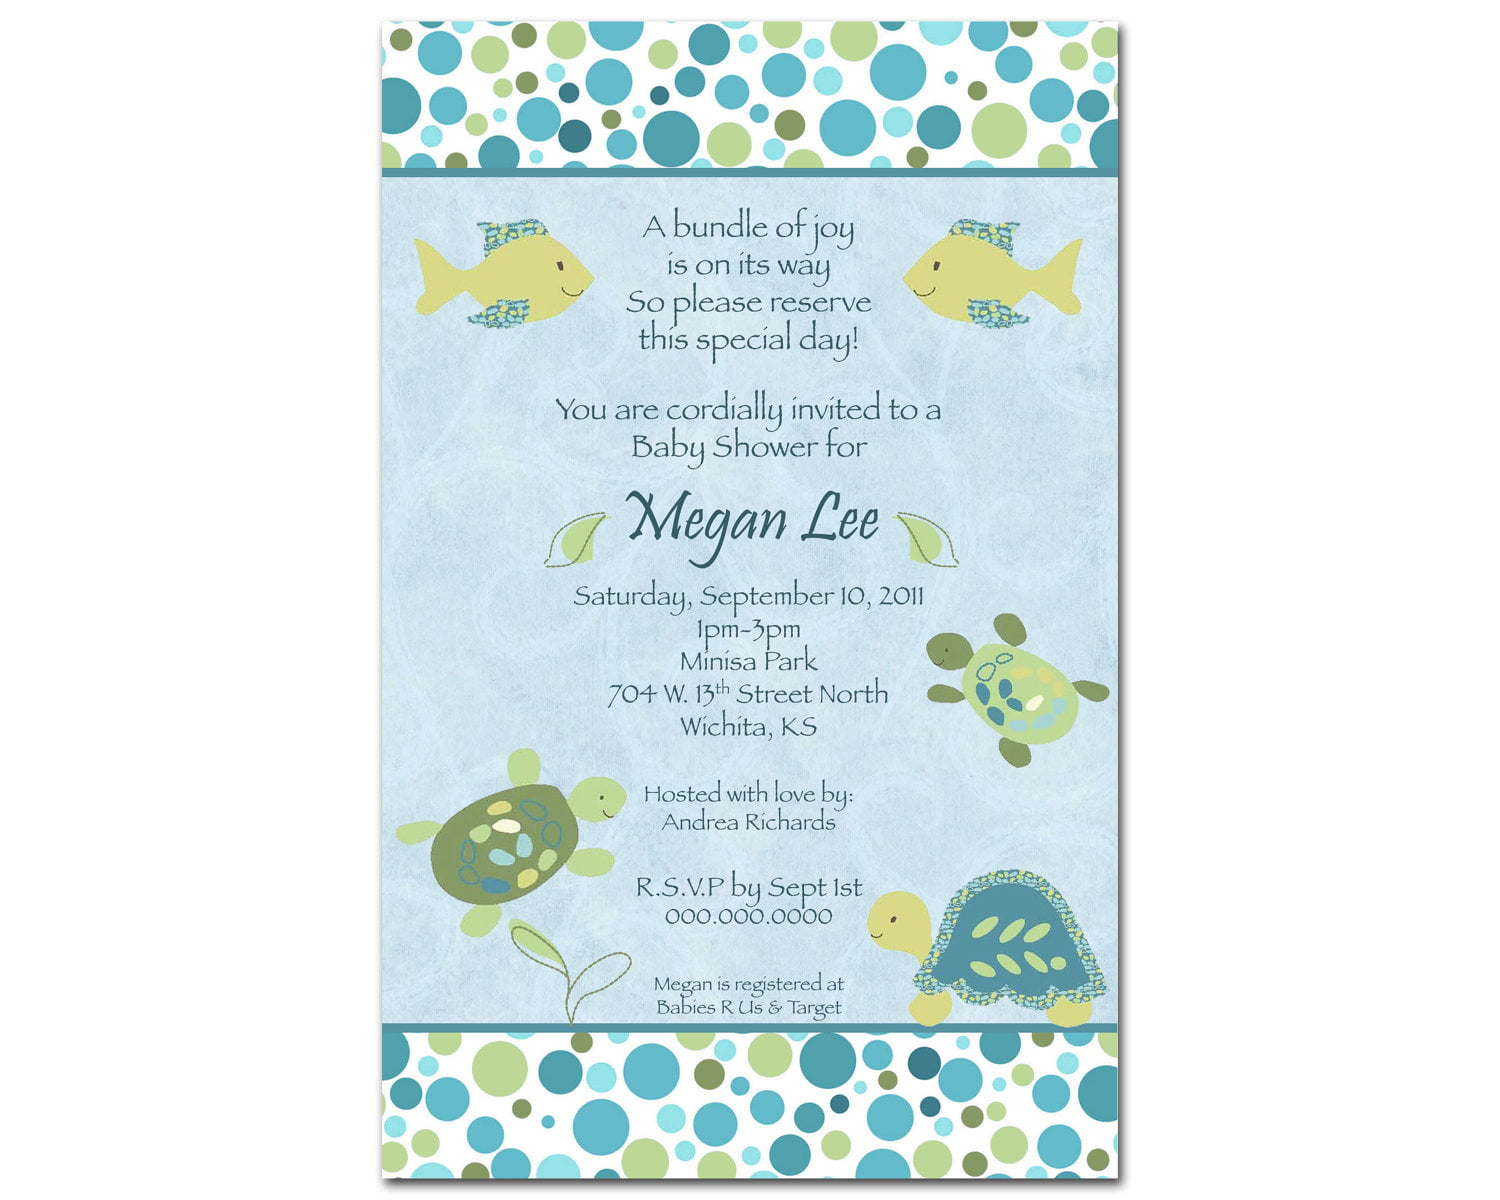 Baby shower invites for boy free printable baby shower for Baby shower boy invitation templates free